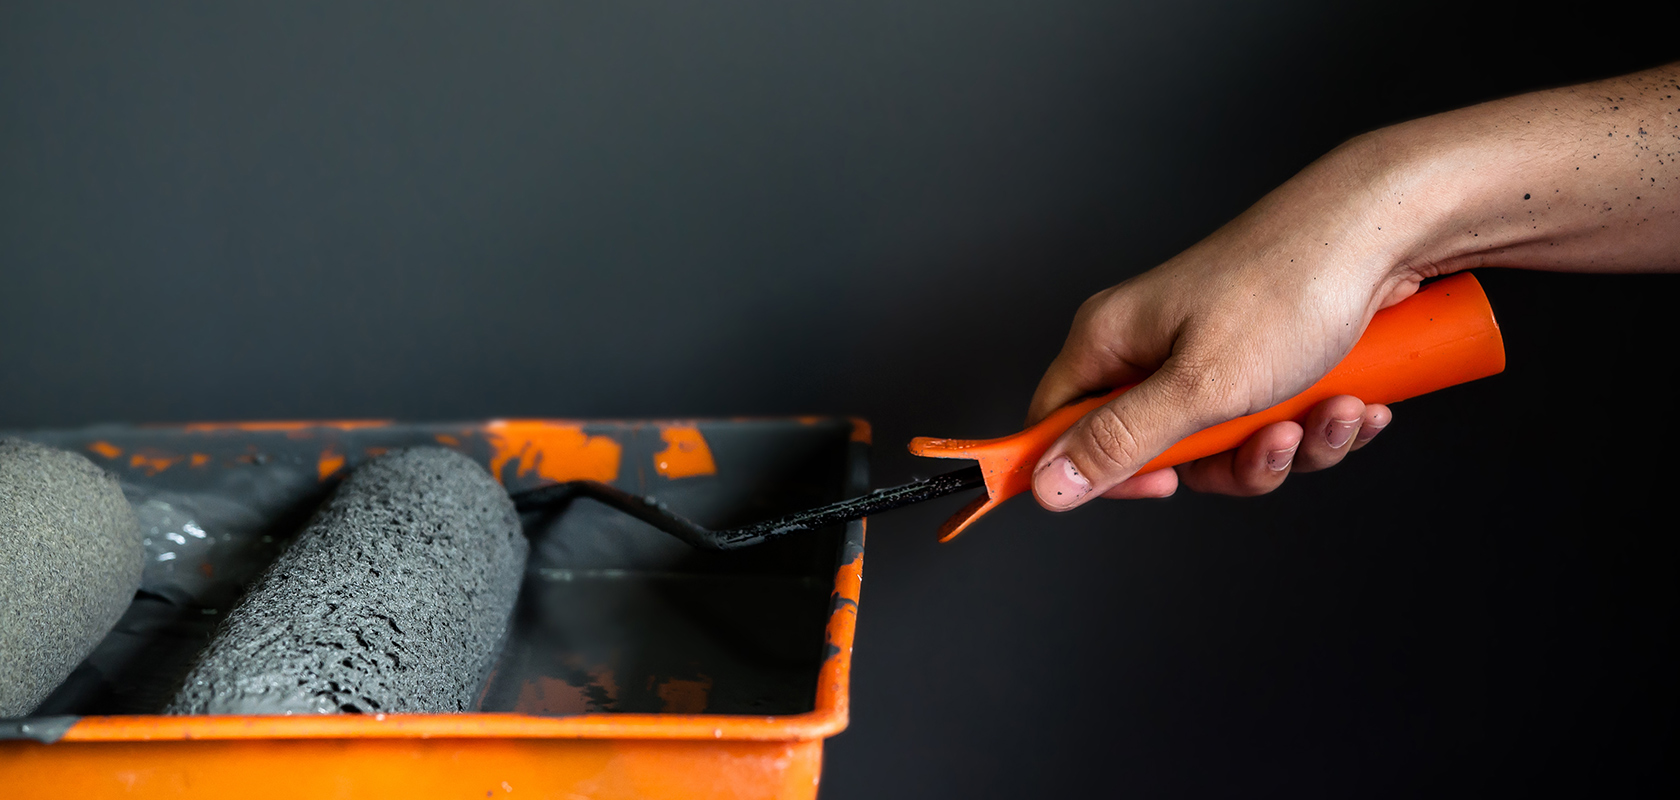 Close up of hand holding paint roller in paint tray, Grey wall background, Copy space.